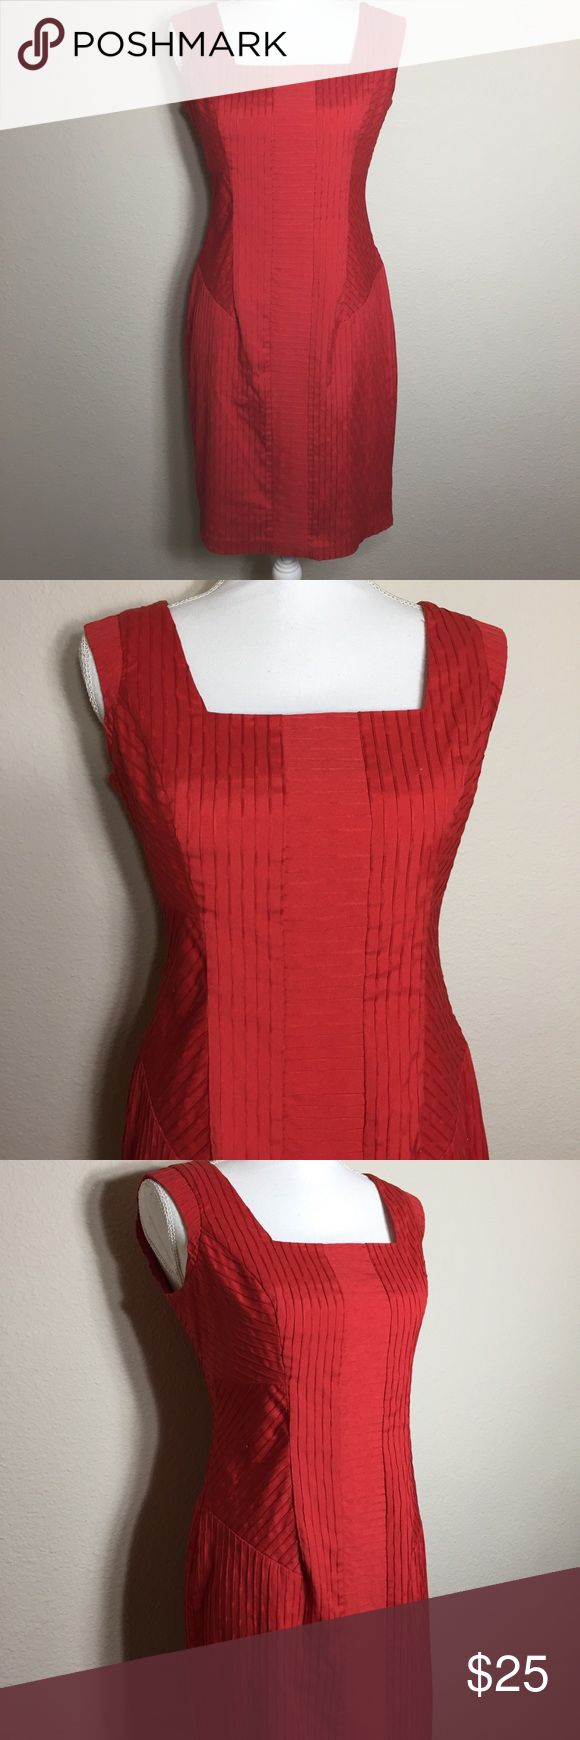 """Nordstrom's Andrew Marc Dress Size small. Red. Cotton, spandex and polyester. Fully lined. Sleeveless. Square neck front and back. Back zip. Interesting stitched pattern all over this dress (see last photo). Bust measures 34"""". Length is 36"""". Hips measure 39"""". Excellent condition. (2/27 33) Andrew Marc Dresses"""